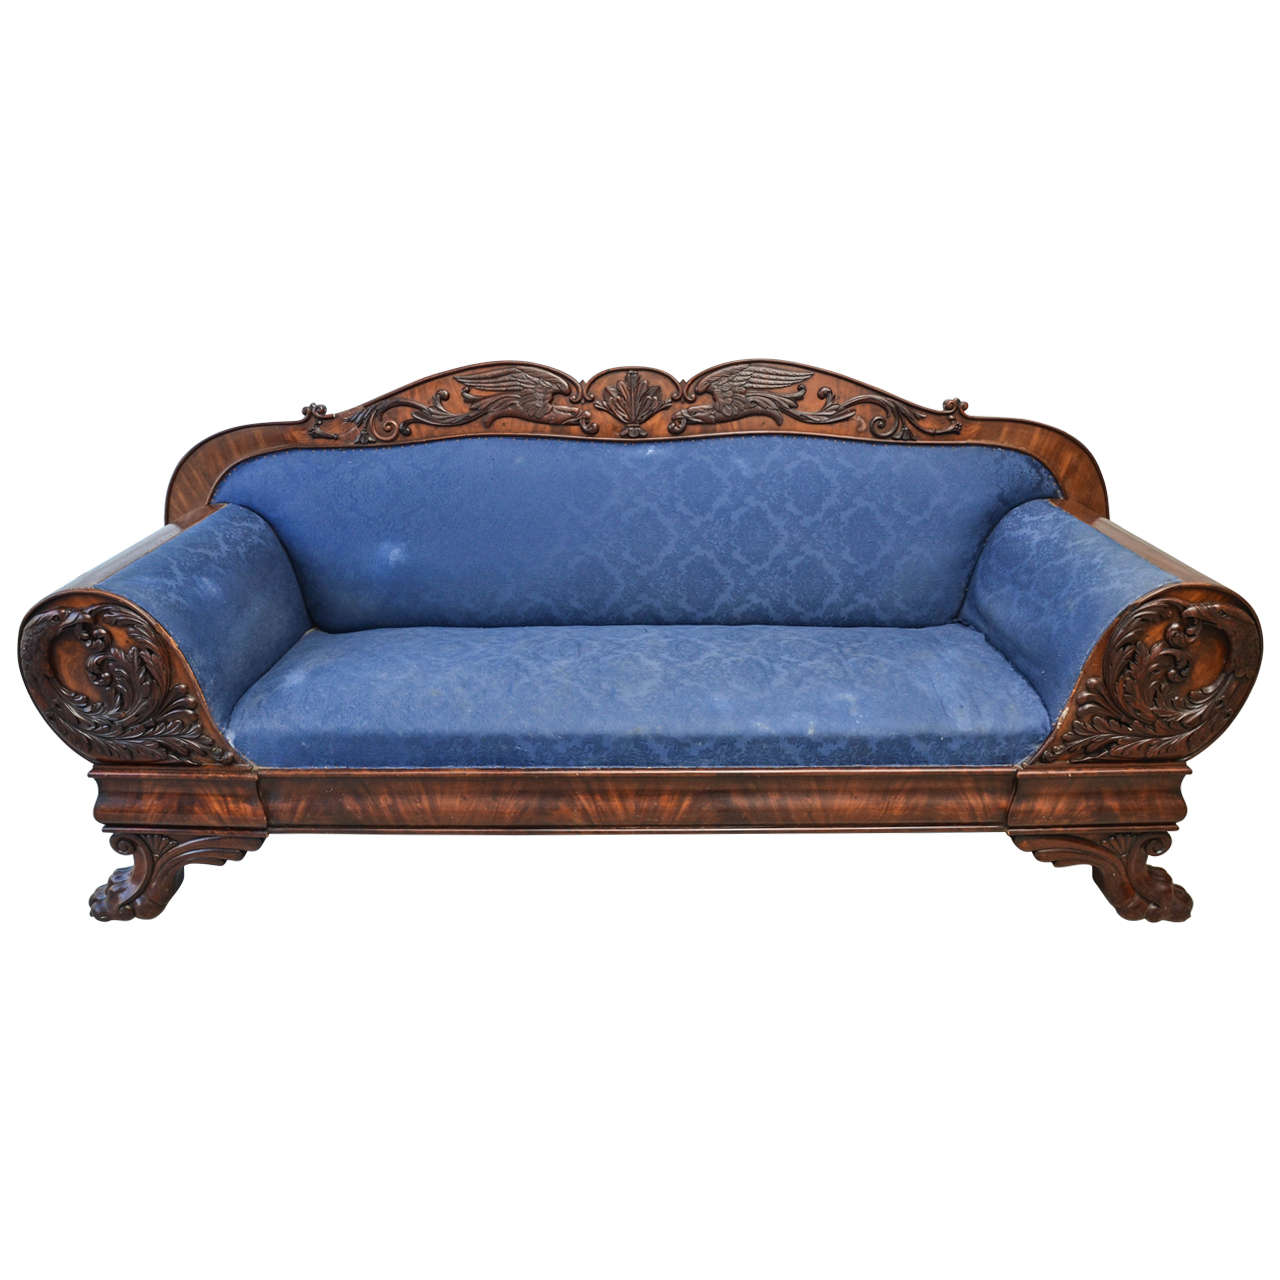 Neoclassical Style Claw Foot And Eagle Appliqué Sofa For